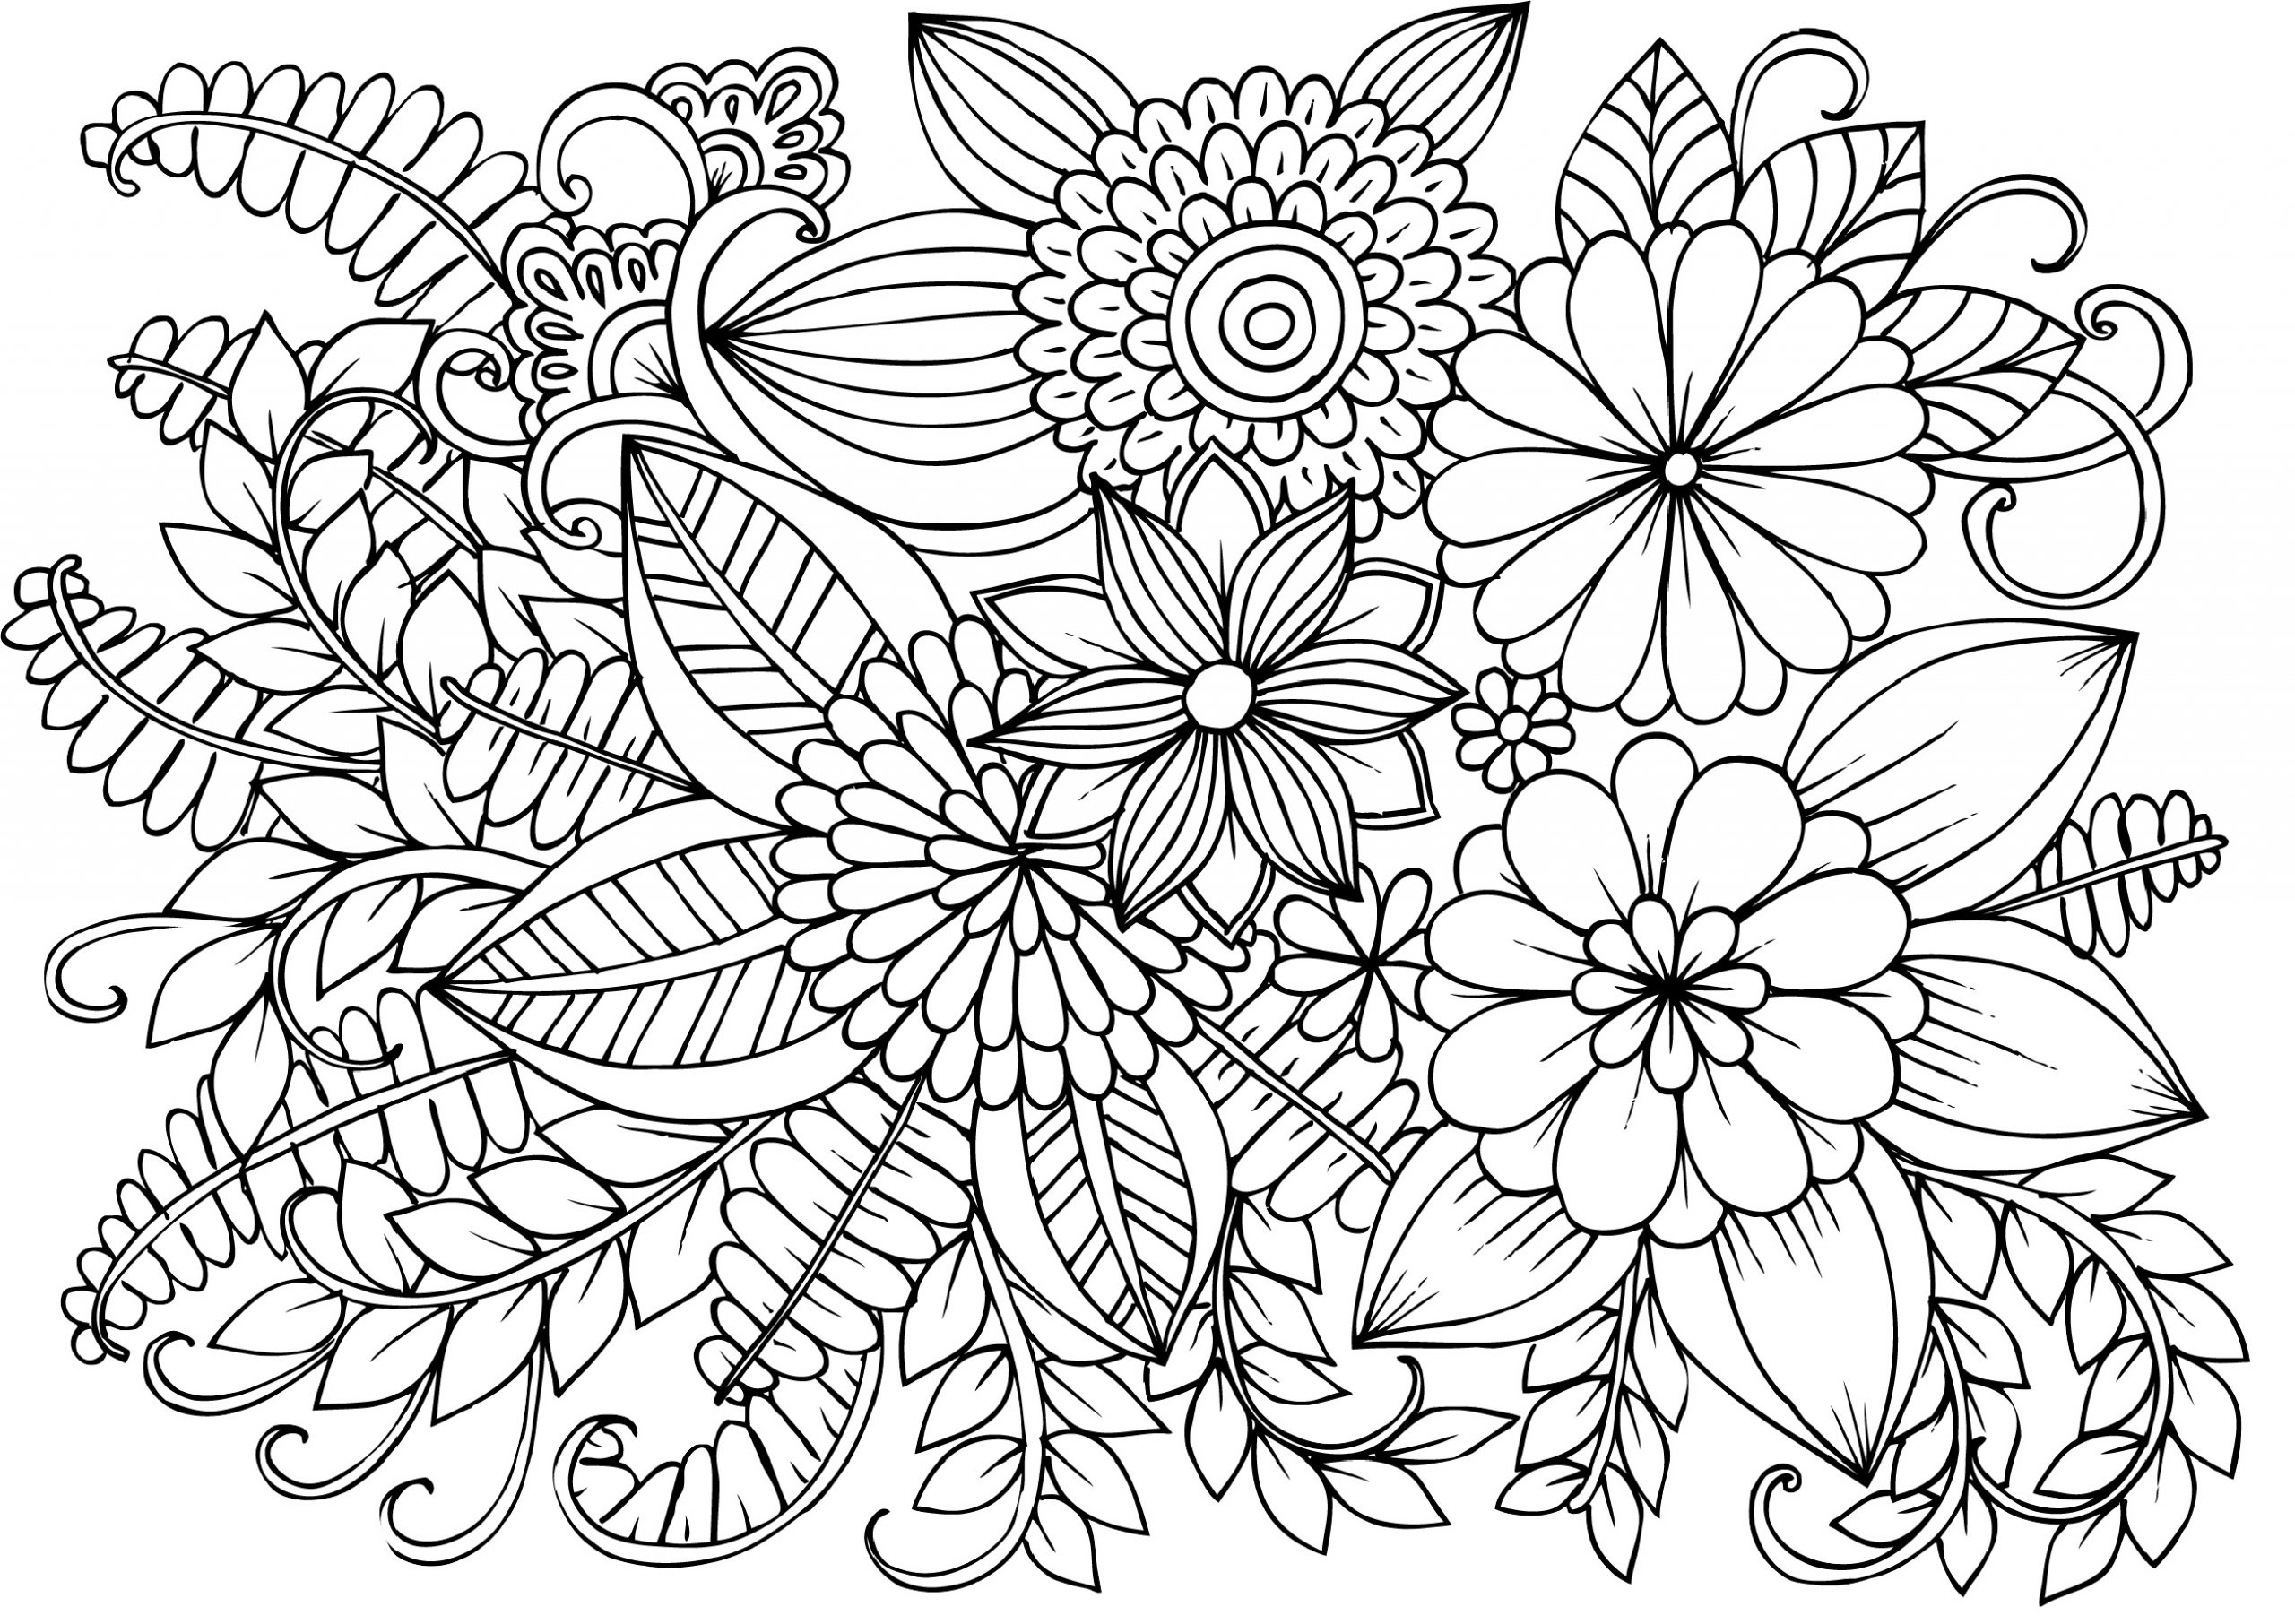 Very Detailed Flowers Coloring Pages for Adults Hard to ...